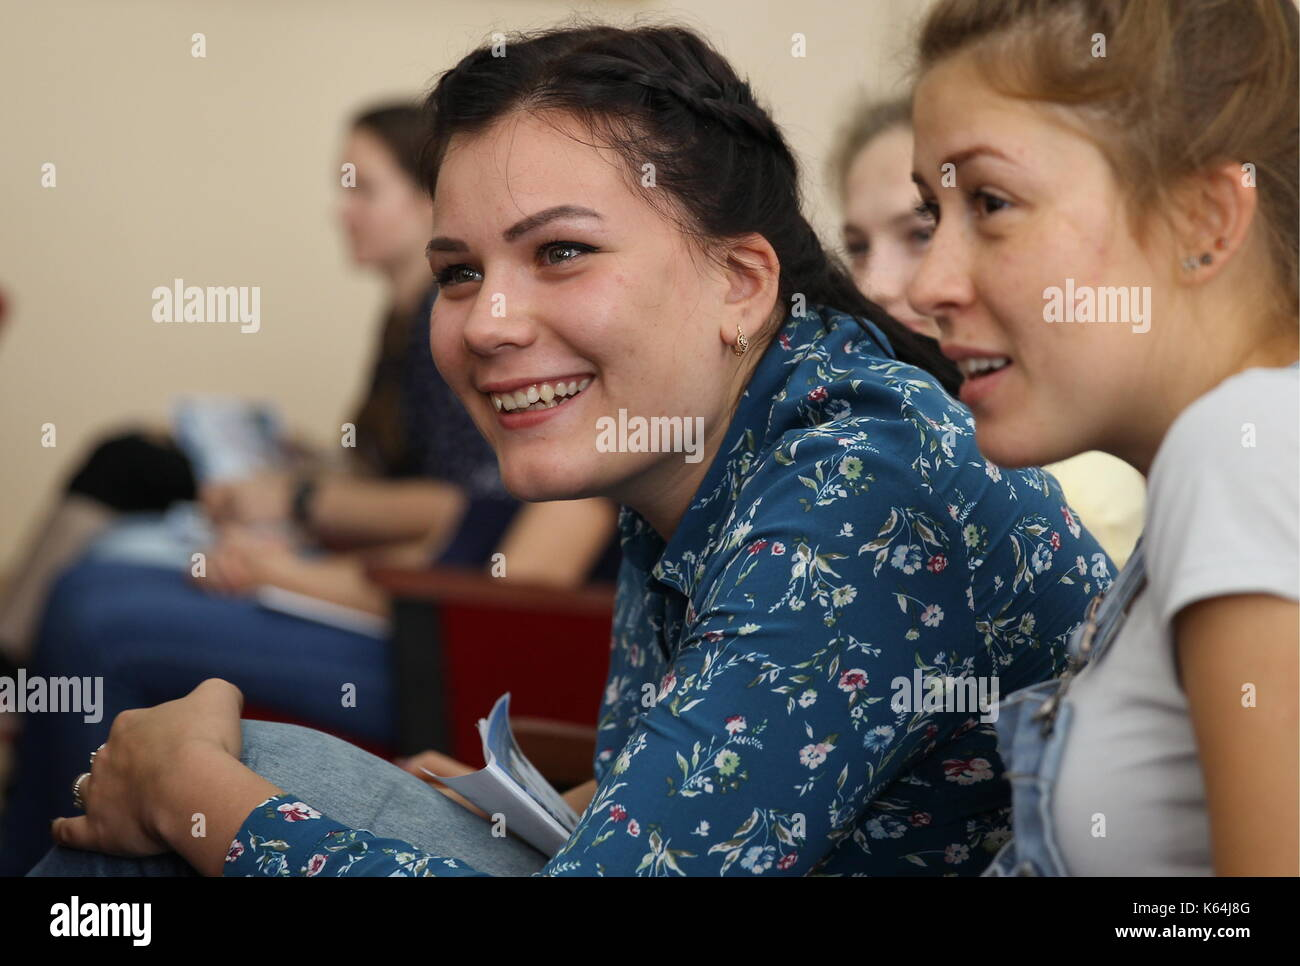 KRASNODAR, RUSSIA - SEPTEMBER 11, 2017: Young women attend a meeting with admissions office members as the Krasnodar Aviation Military High School starts education of female pilots. Vitaly Timkiv/TASS - Stock Image